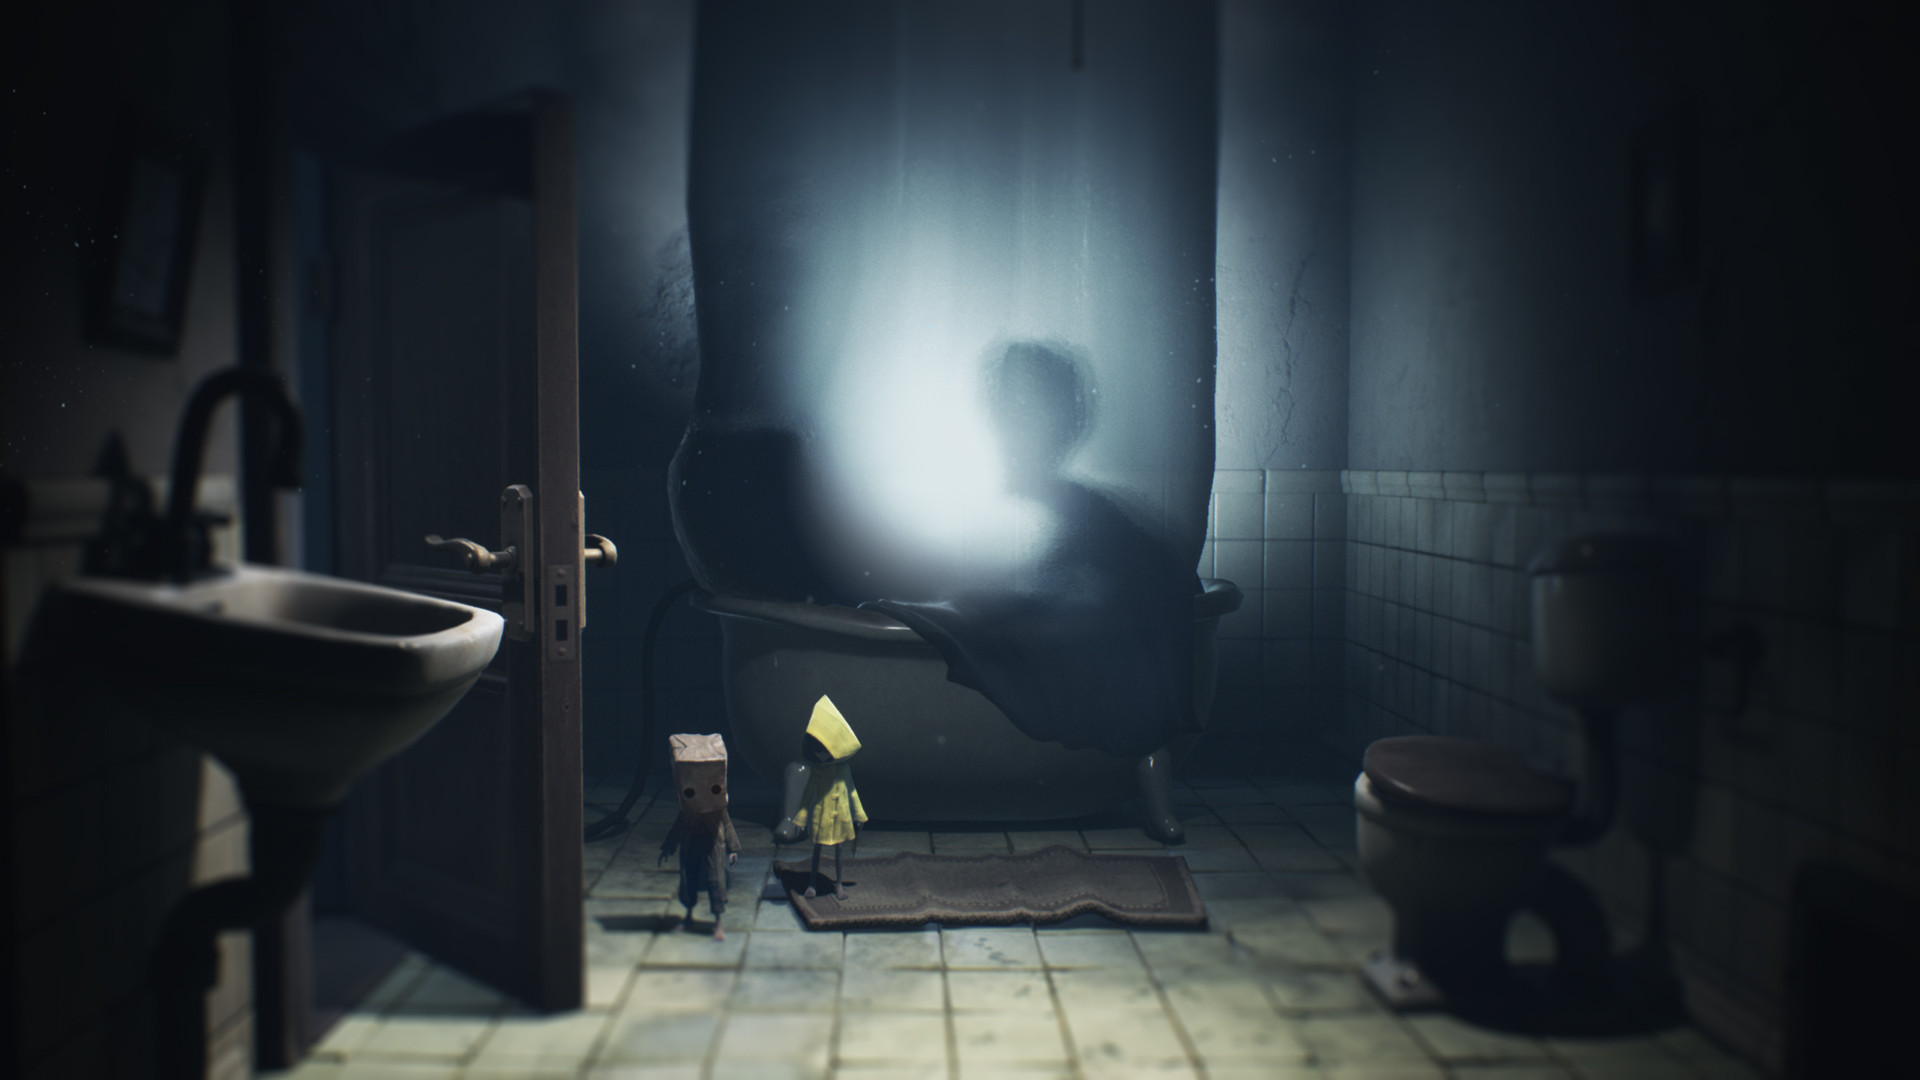 Little Nightmares 2 Chapter 4 Walkthrough Puzzles Glitching Remains Hats